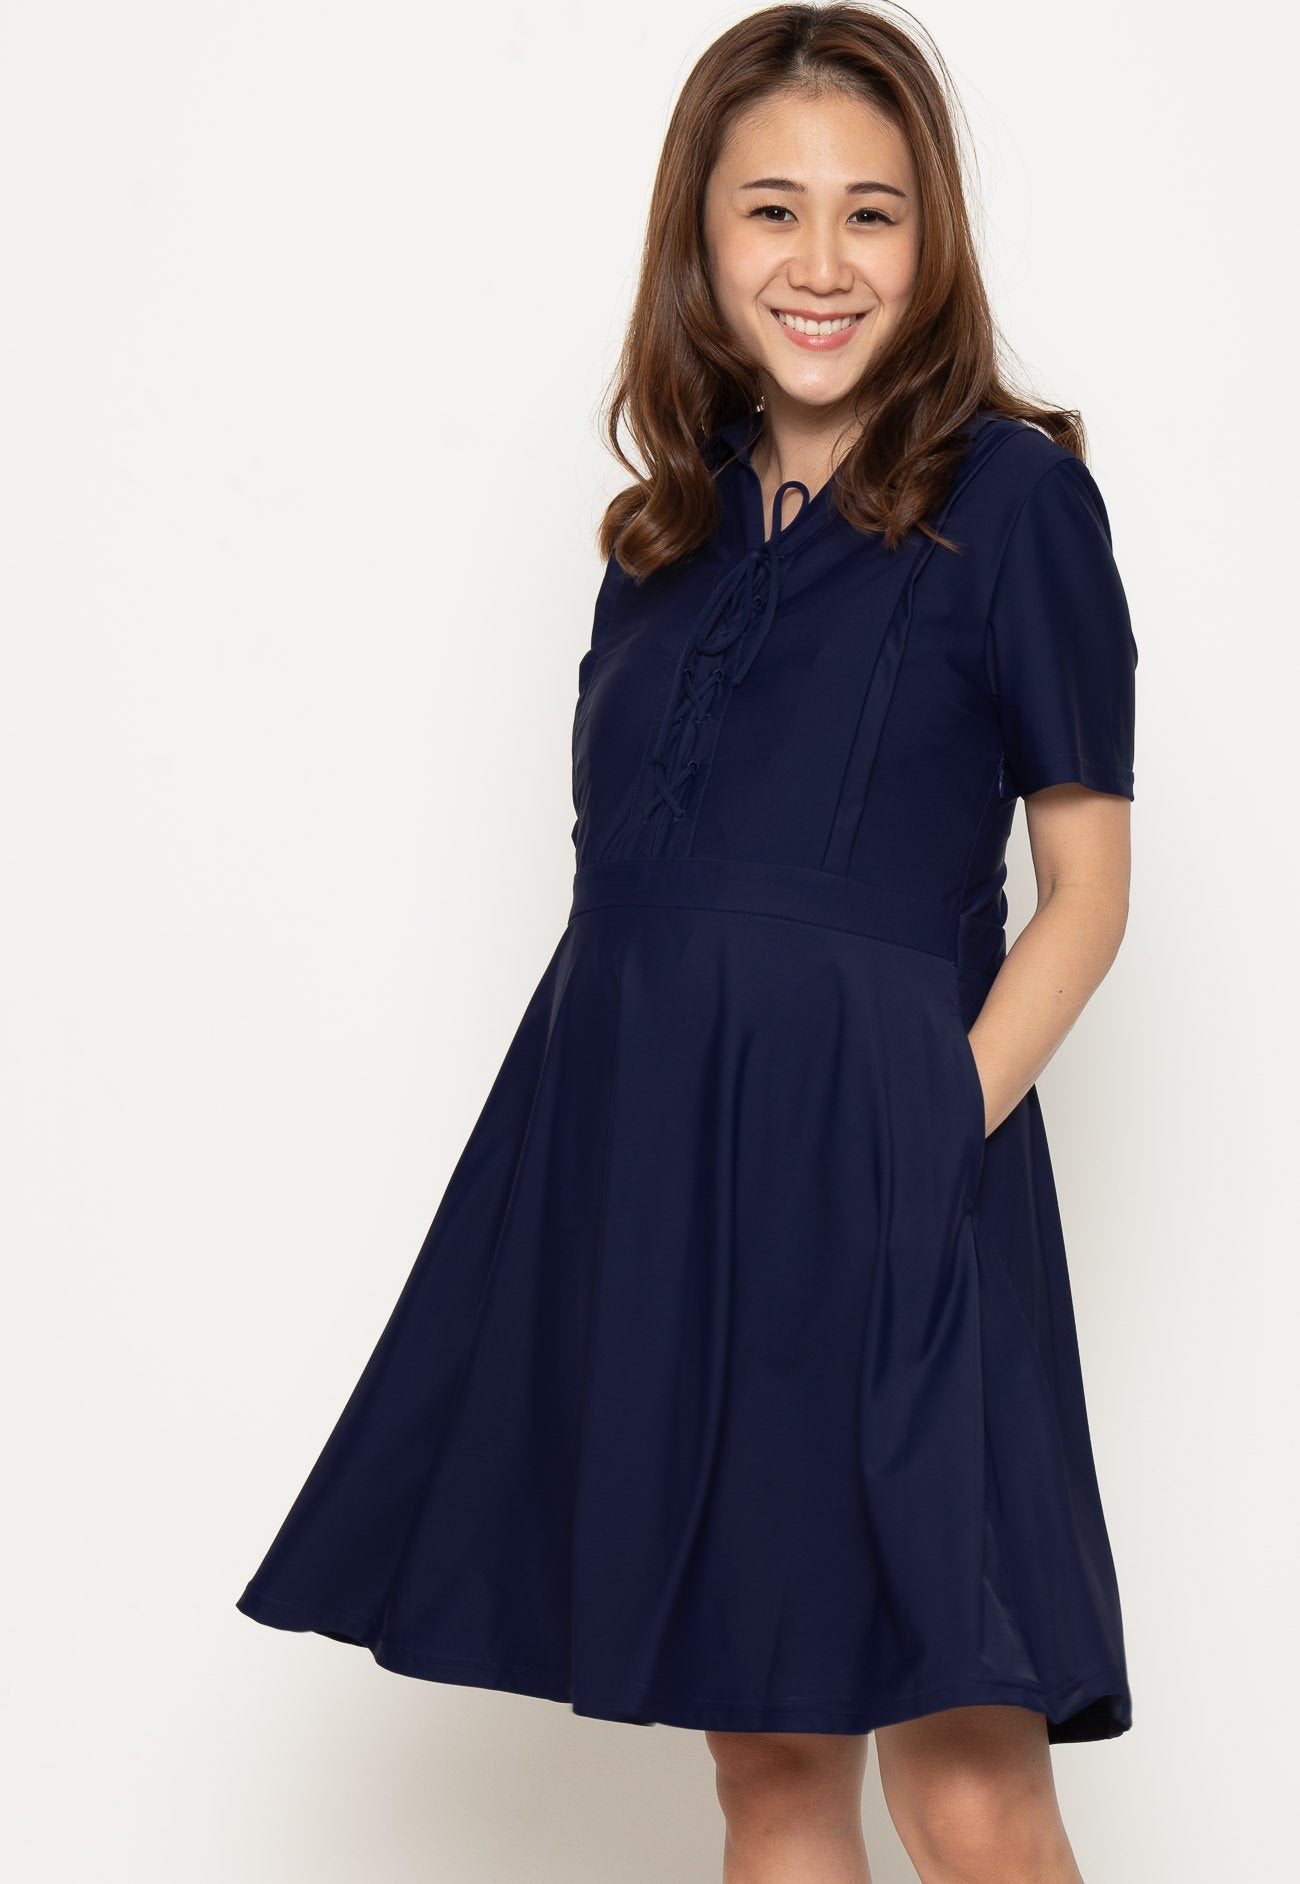 Crisscross Lace Nursing Dress in Navy  by JumpEatCry - Maternity and nursing wear